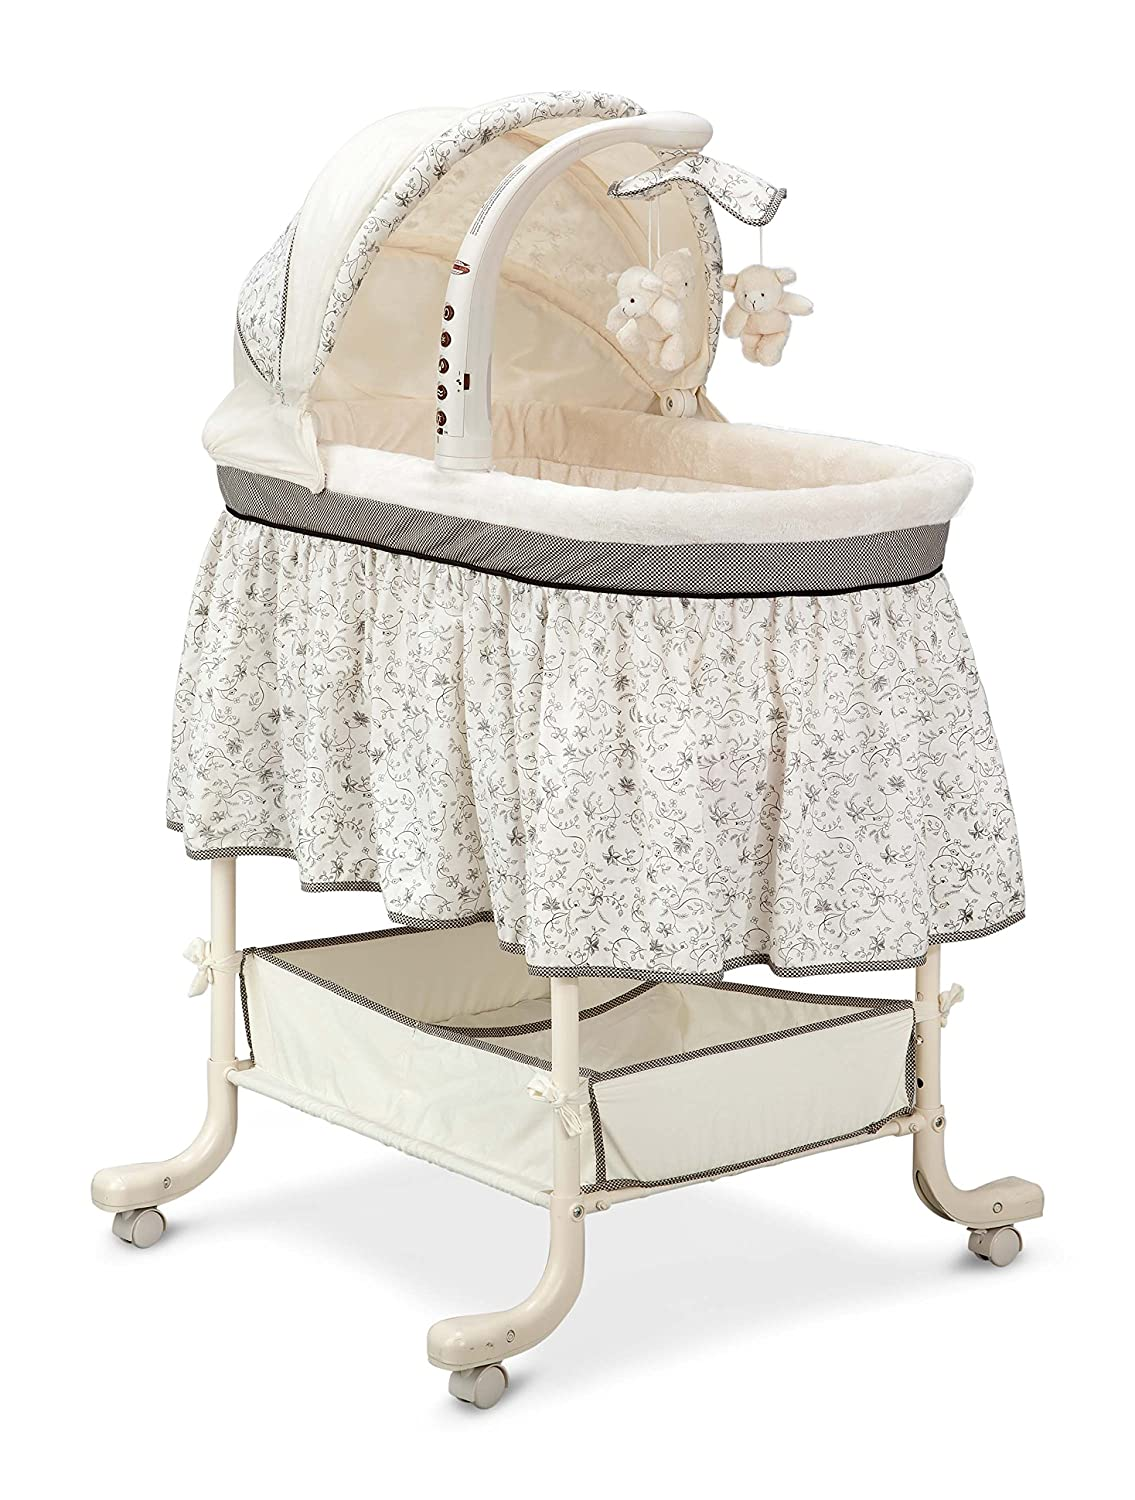 amazon com simmons kids deluxe gliding bassinet slumber time baby